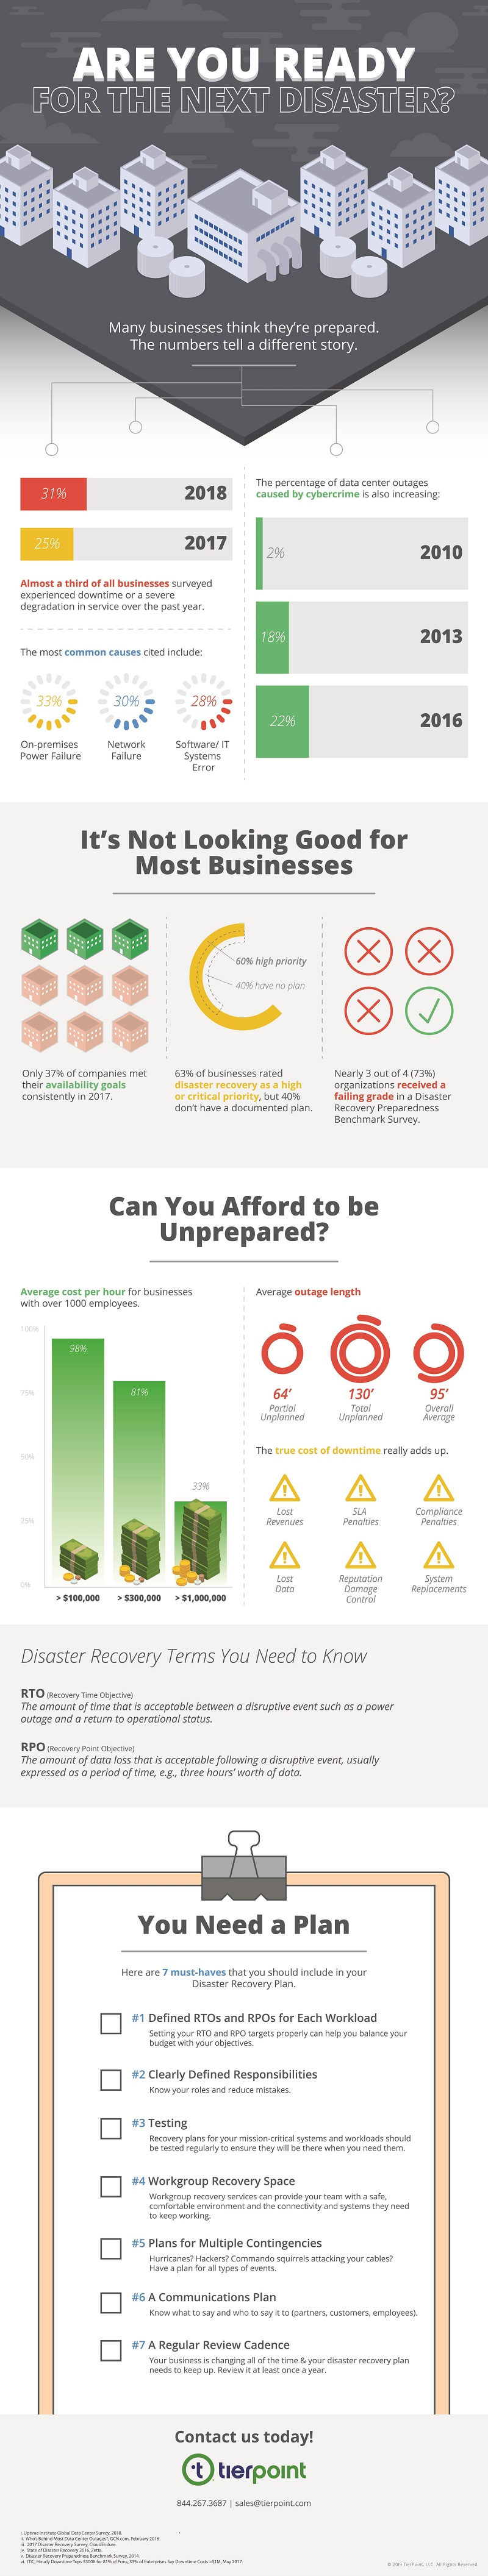 are-you-ready-for-the-next-disaster-blog-infographic